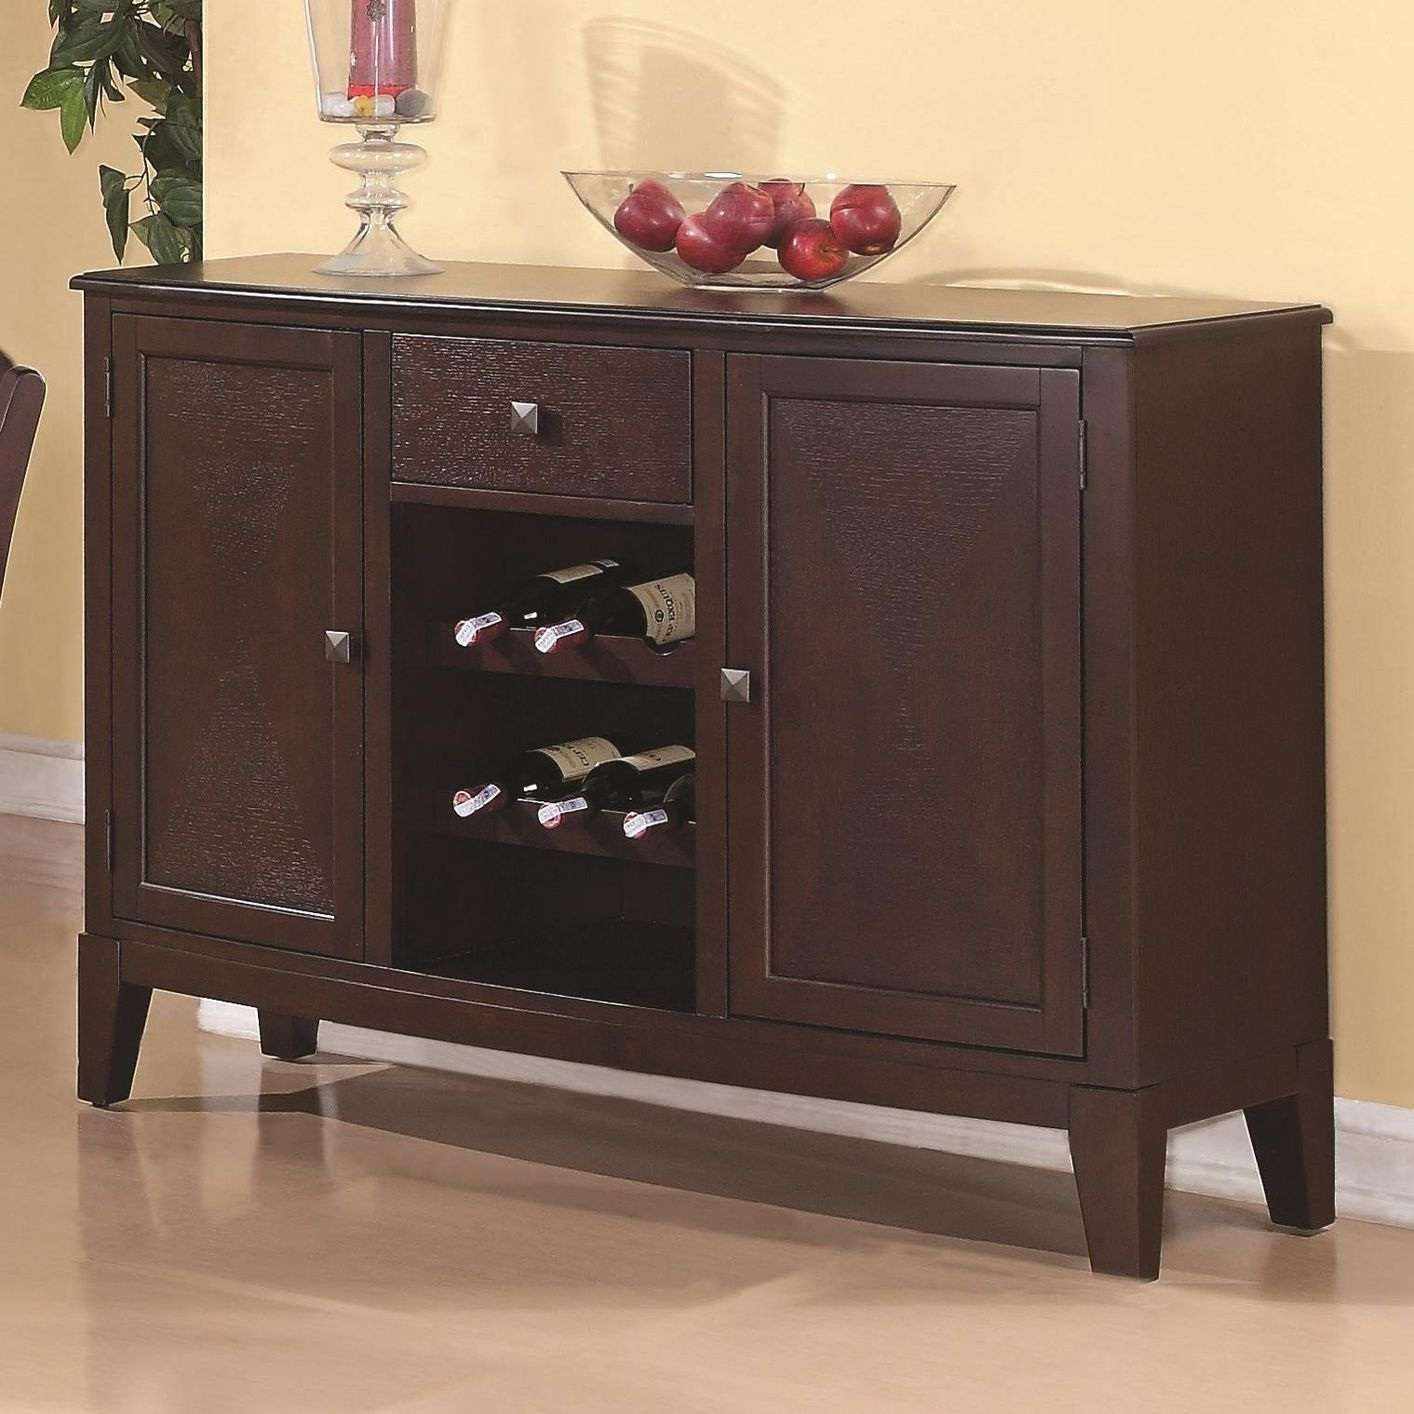 Memphis cappuccino wood buffet table steal a sofa